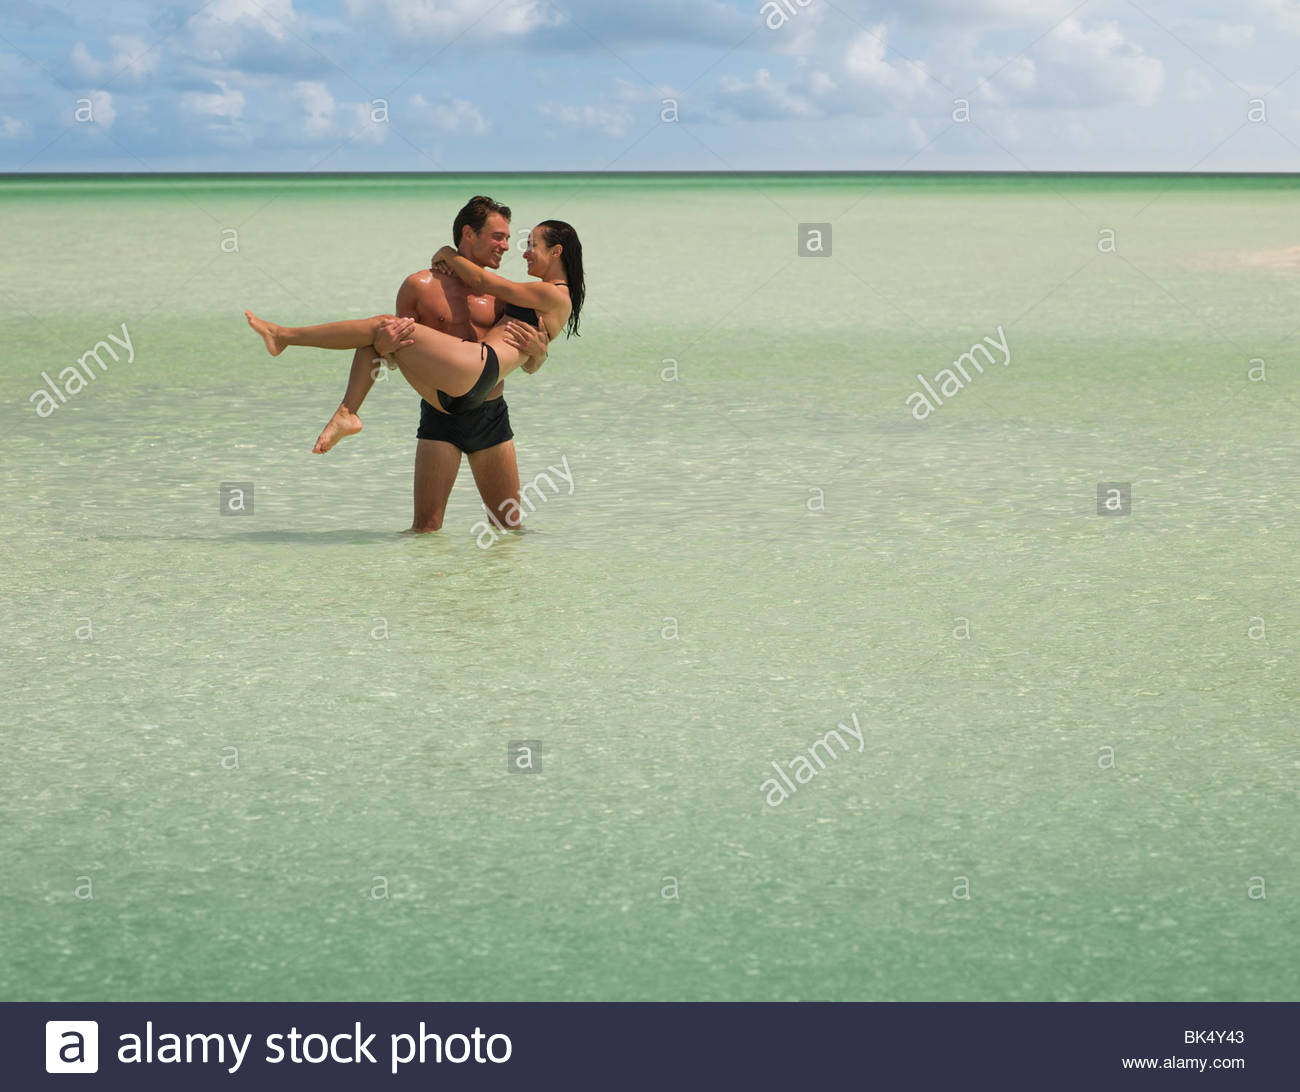 Man carrying woman and wading in ocean - Stock Image